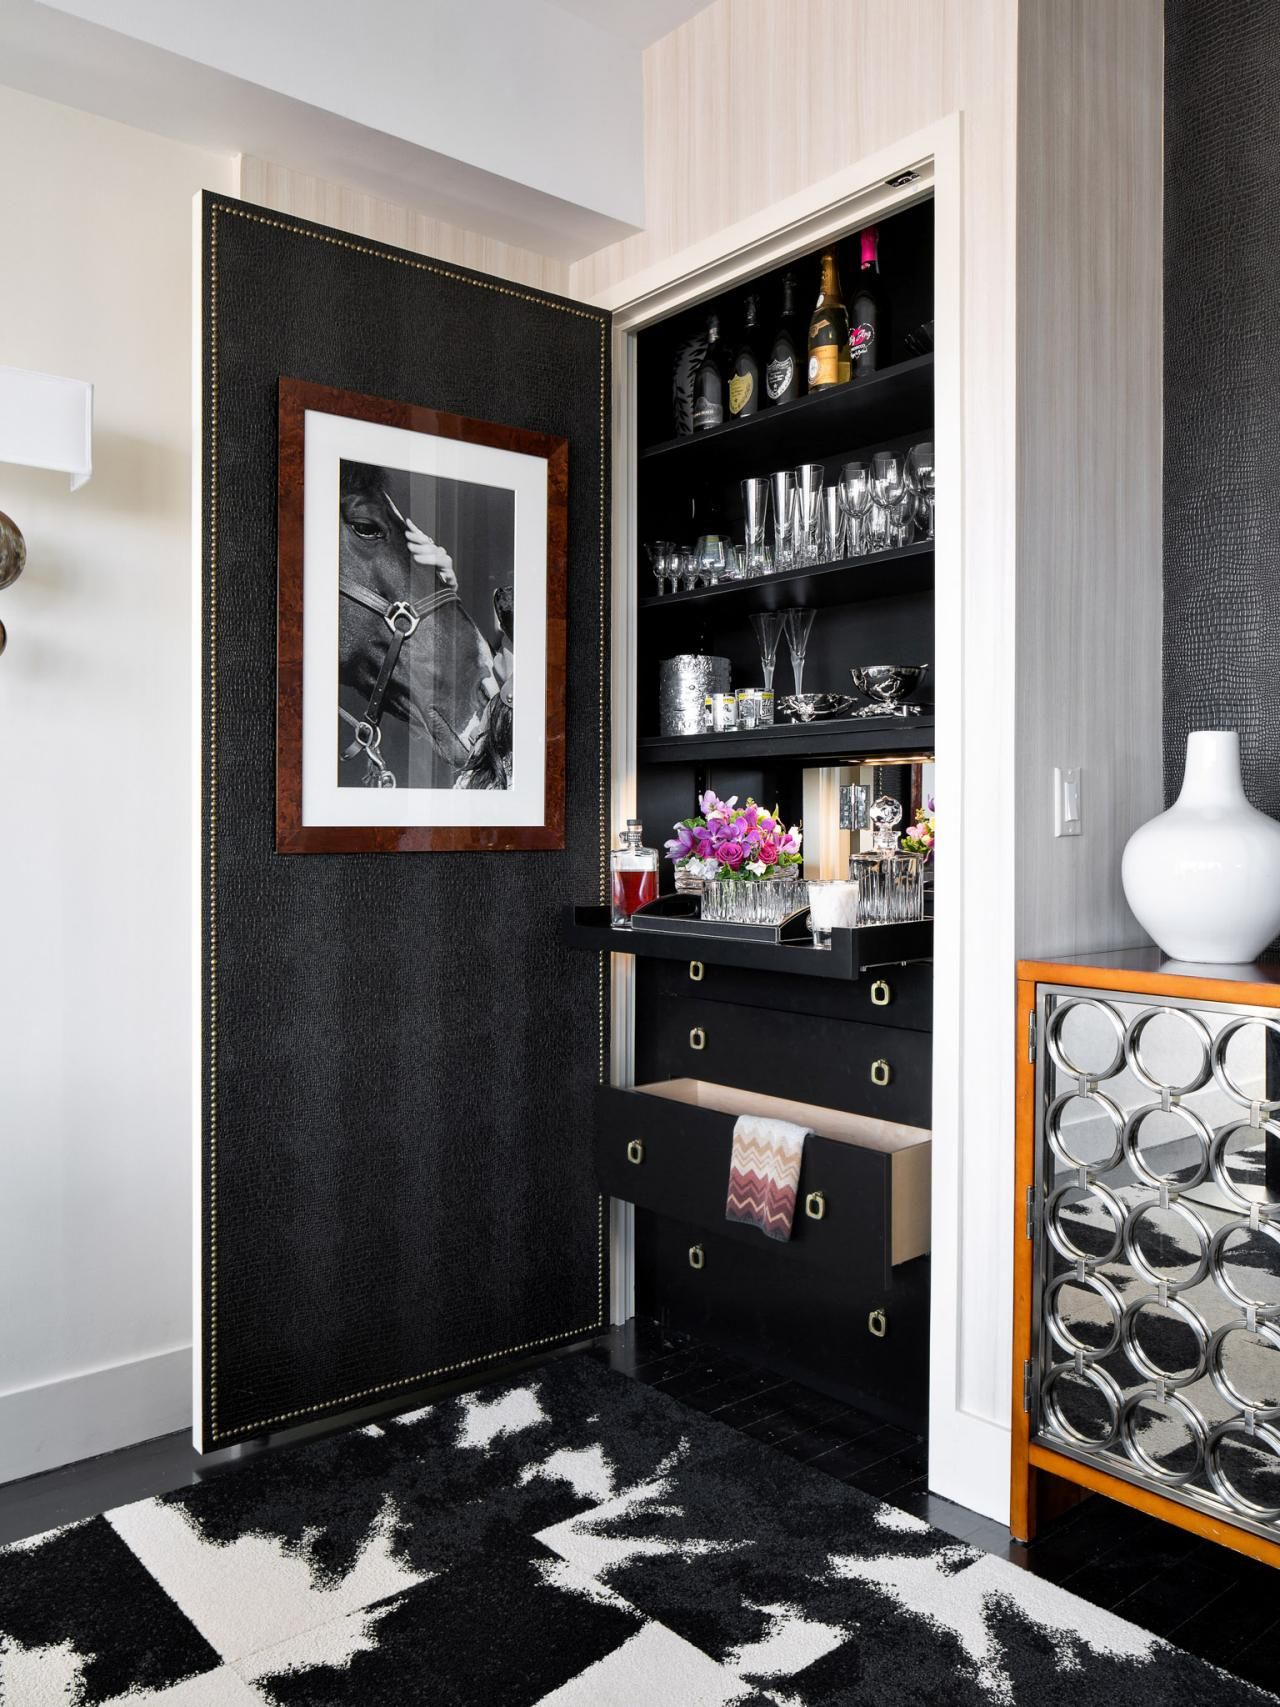 Small Space Decorating Don Ts Interior Design Styles And Color Schemes For Home Decorating Hgtv Decorating Small Spaces Small Spaces Hidden Bar